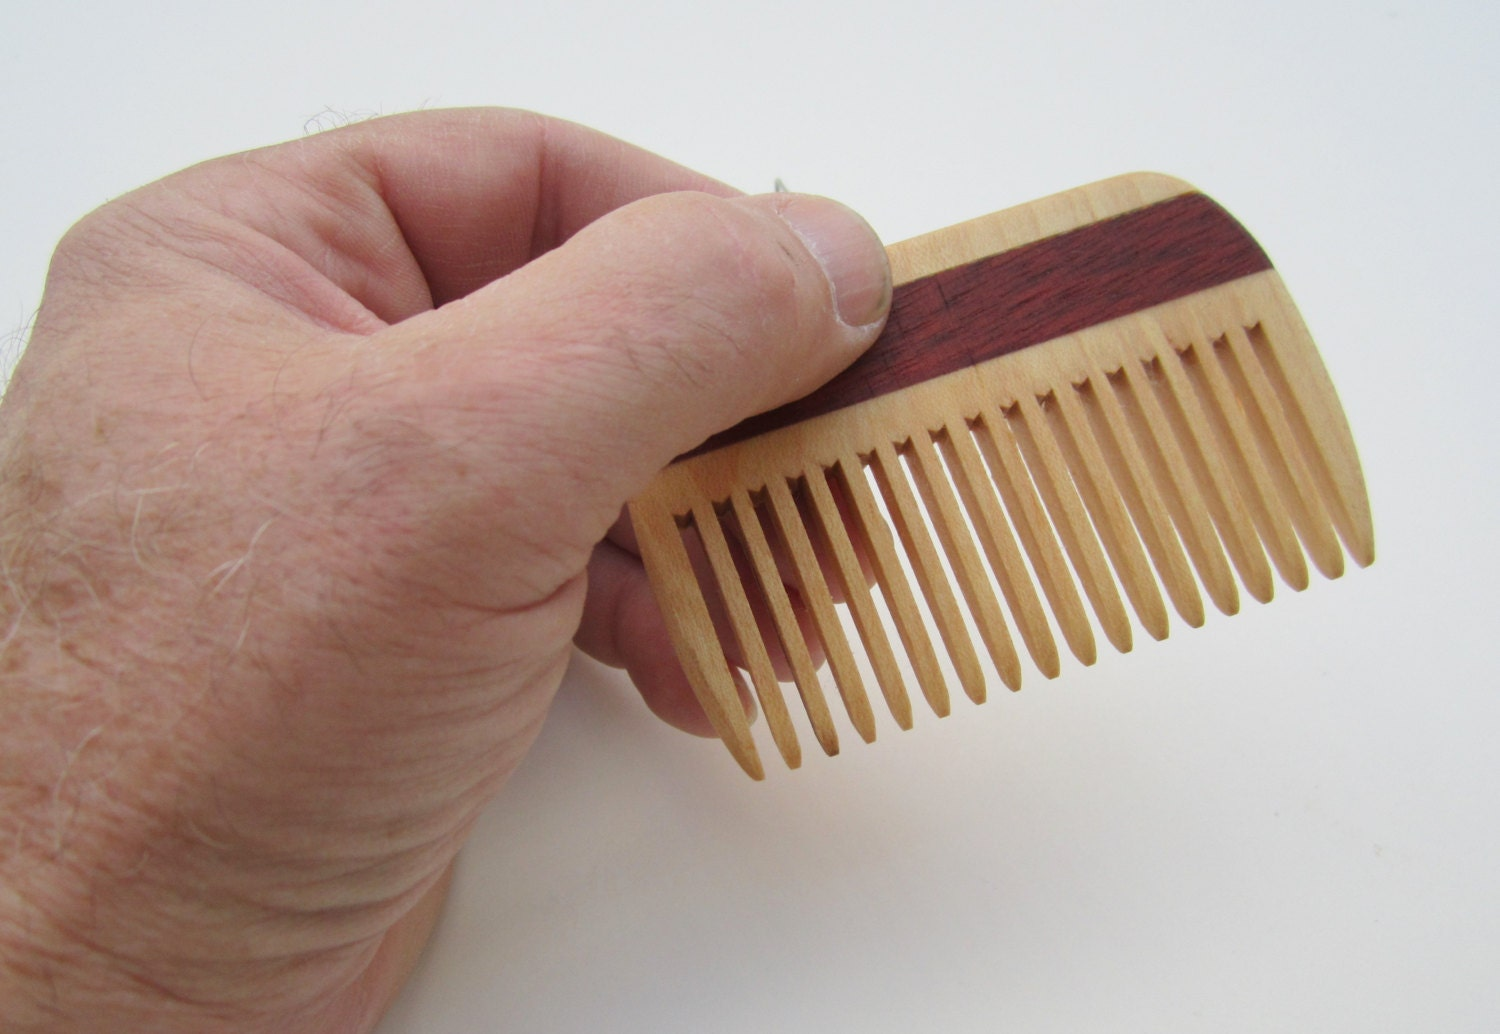 combs women 1-16 of over 20,000 results for hair combs for women showing most relevant results see all results for hair combs for women.